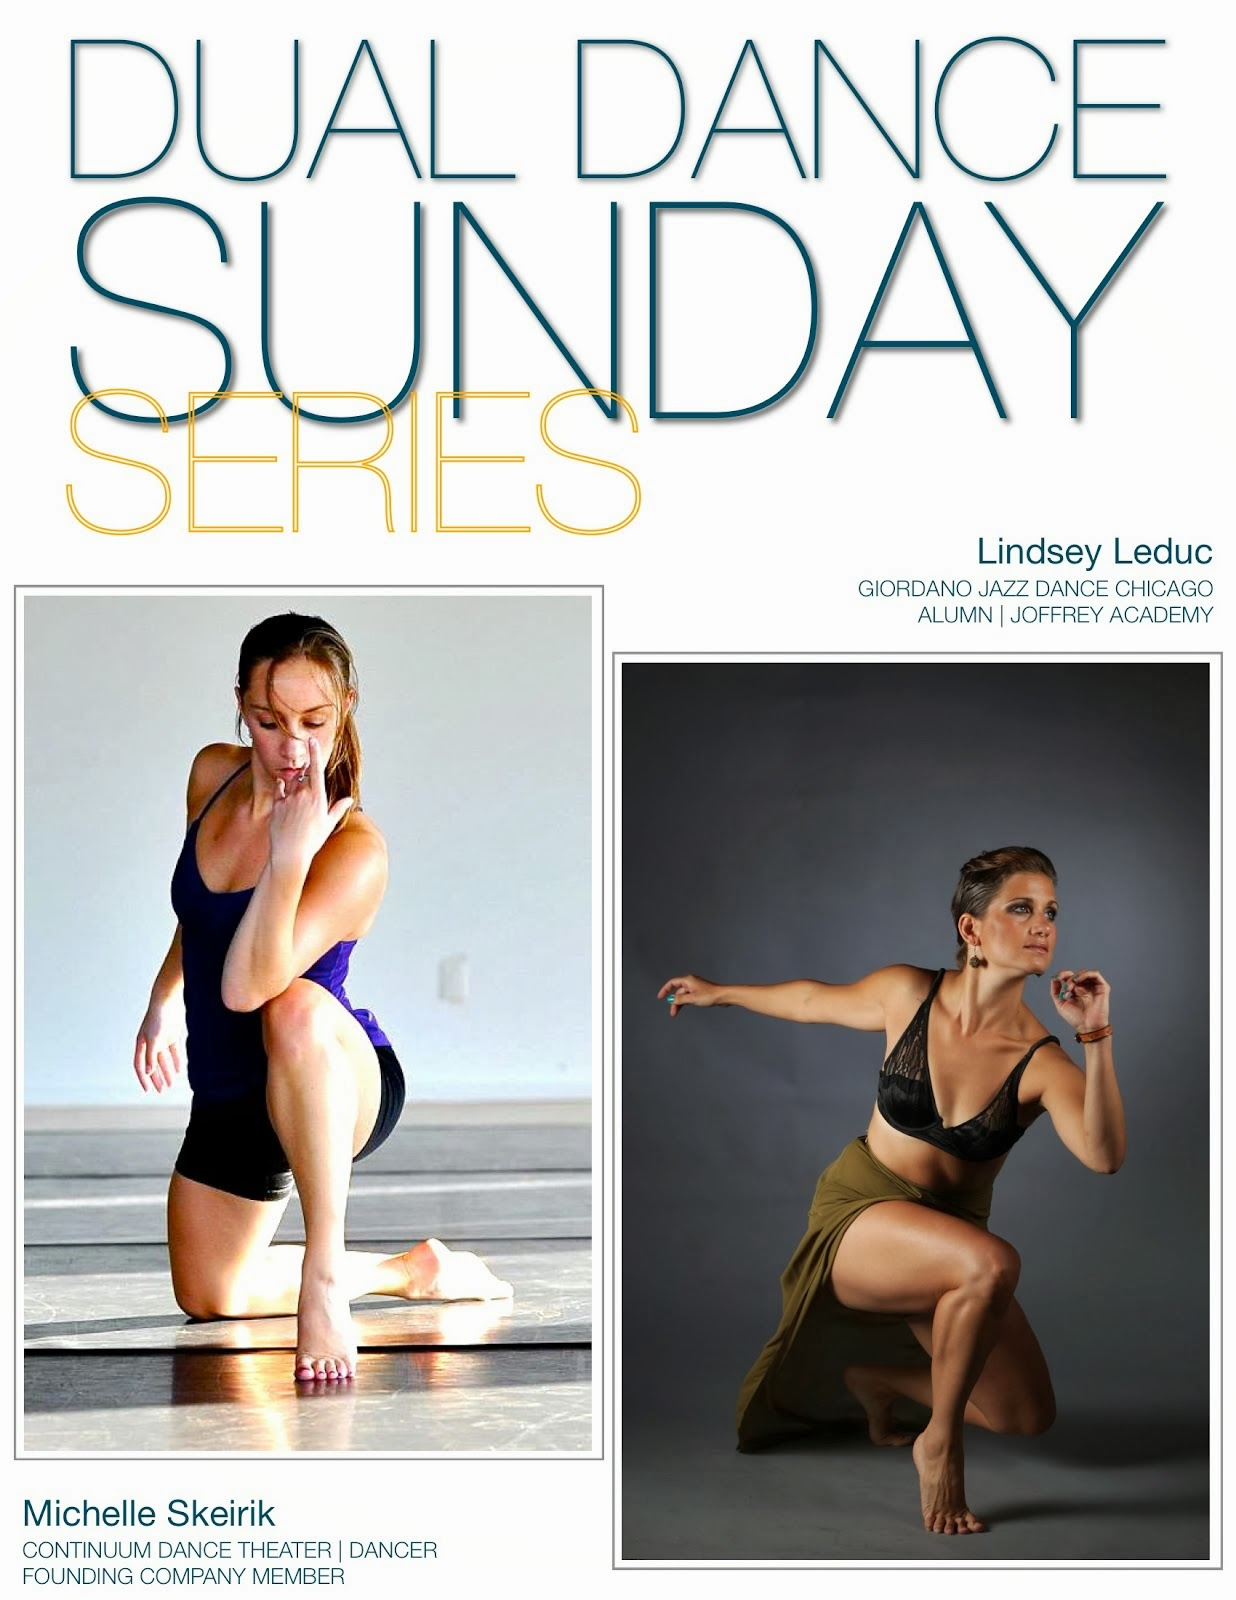 CHECK OUT PAST DUAL DANCE SUNDAY ARTISTS from our SEPTEMBER MASTER CLASS!